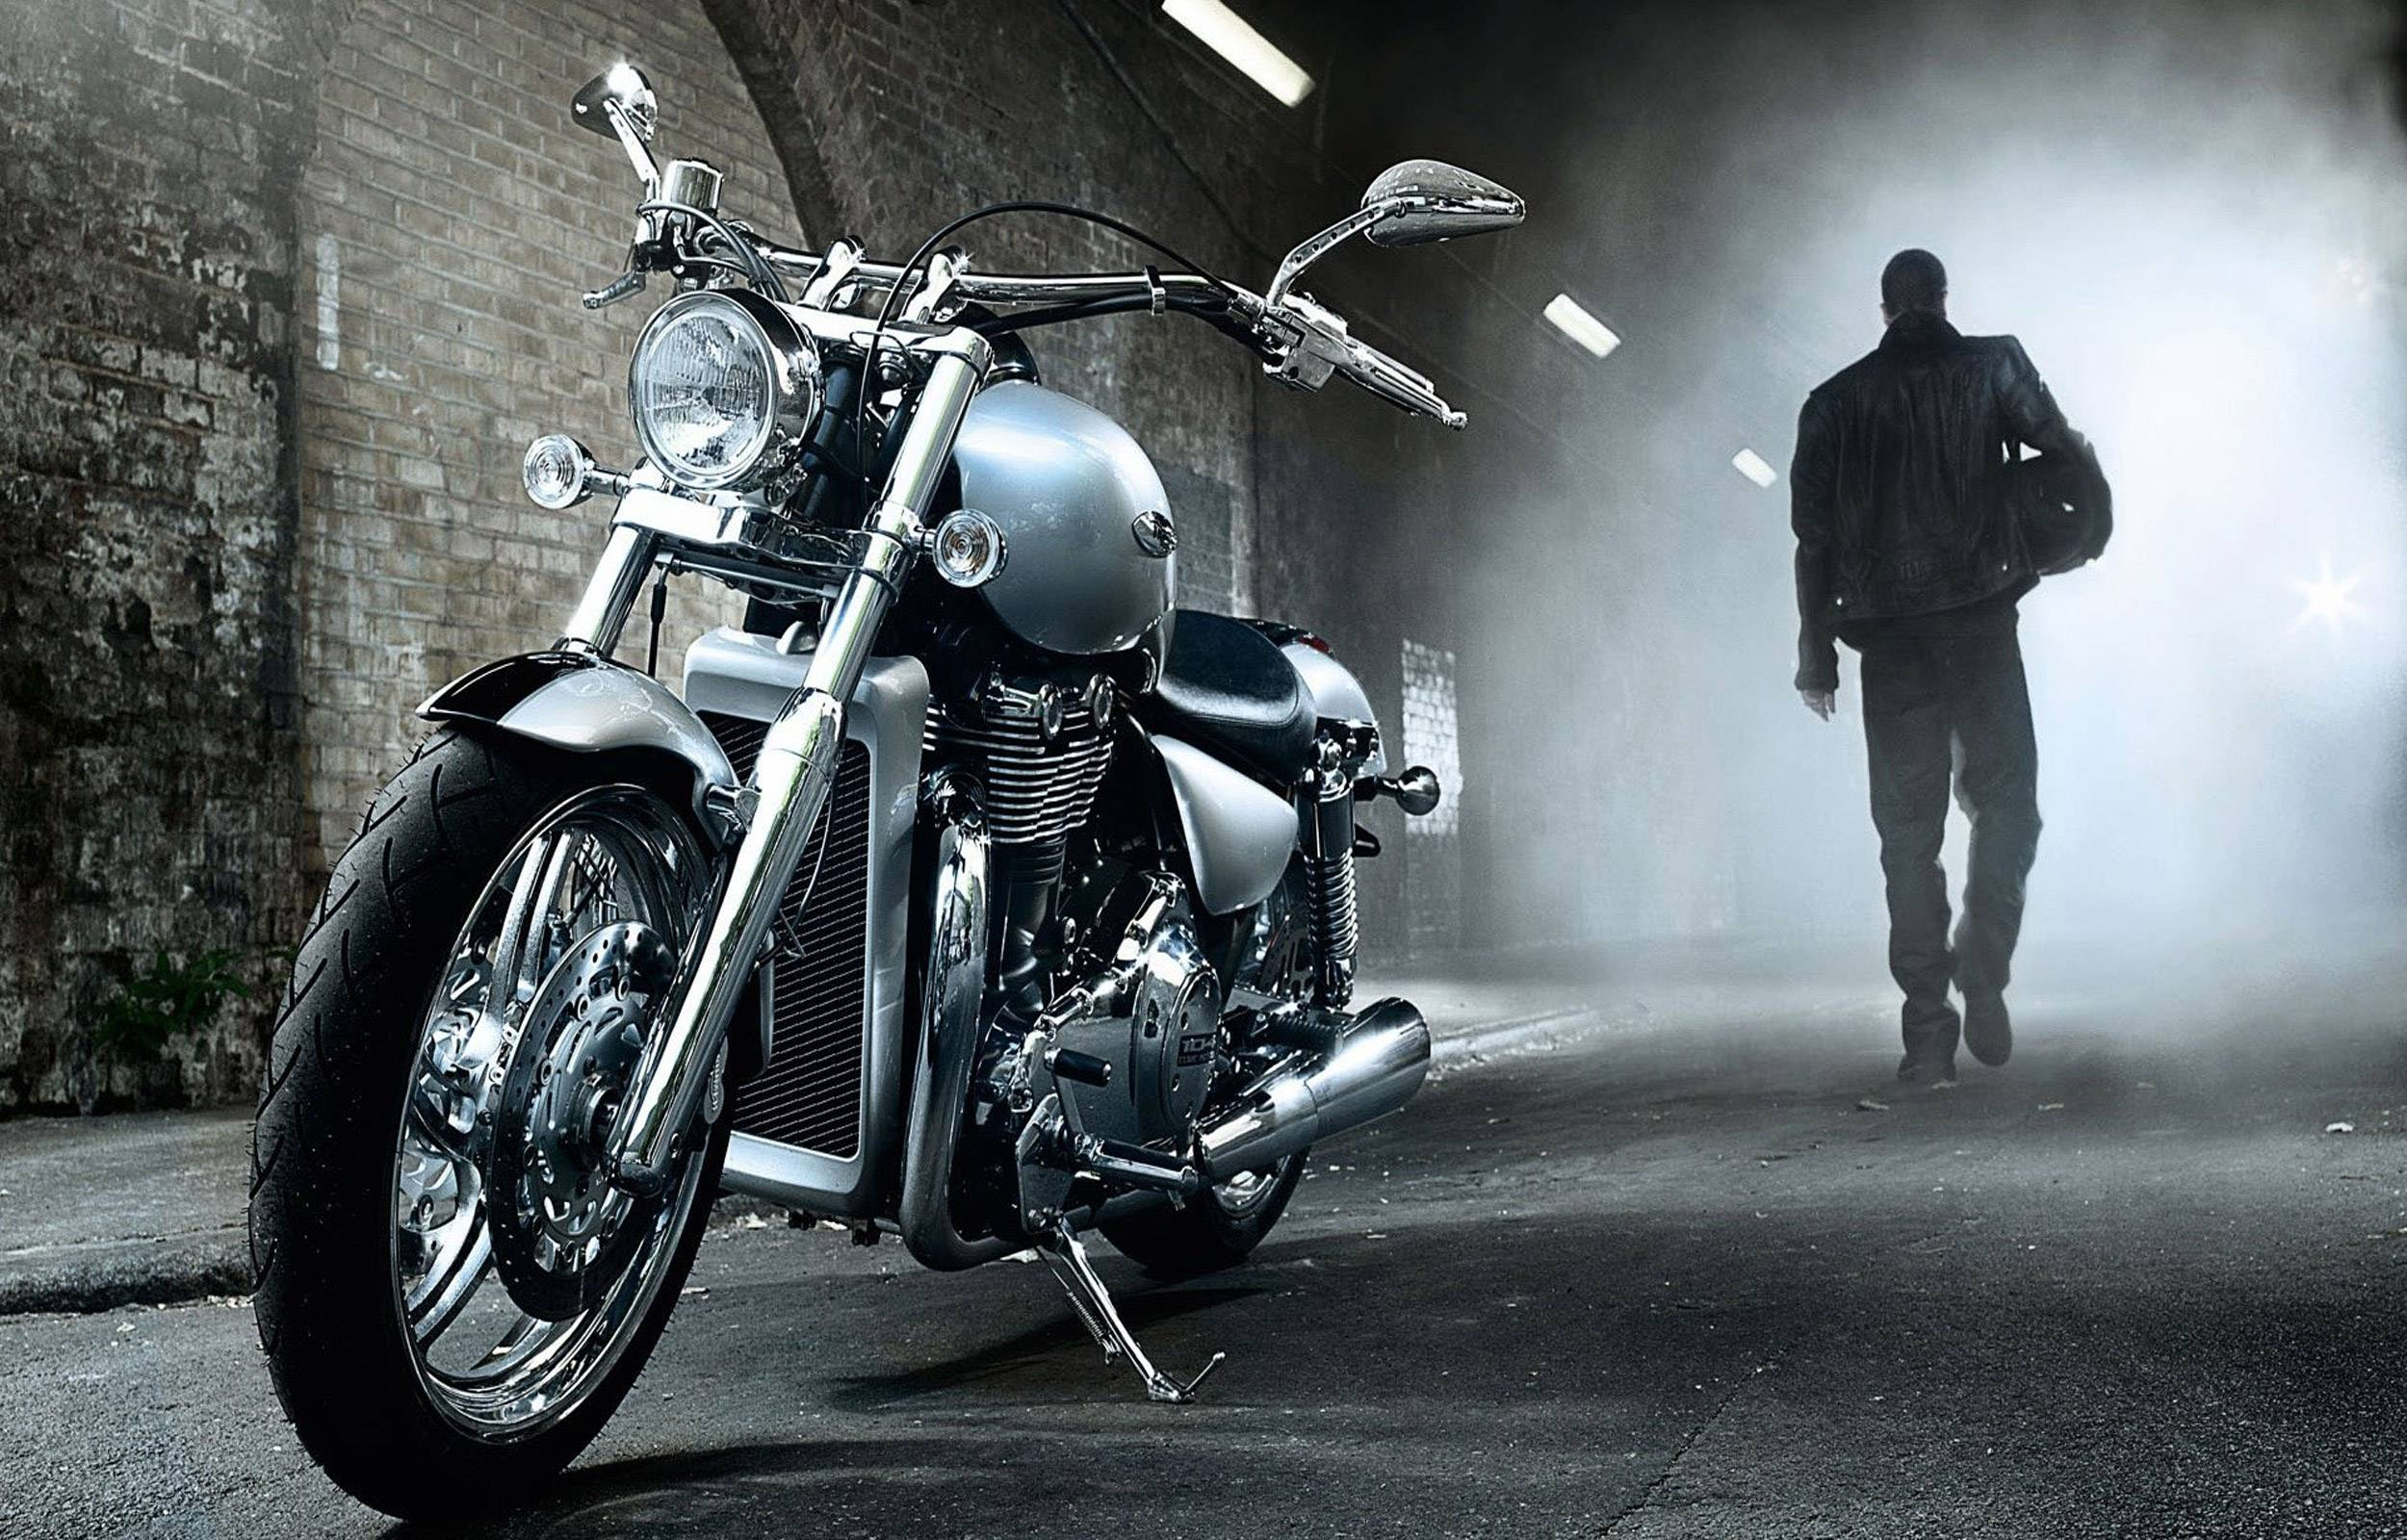 Harley Davidson Wallpapers 2500x1600